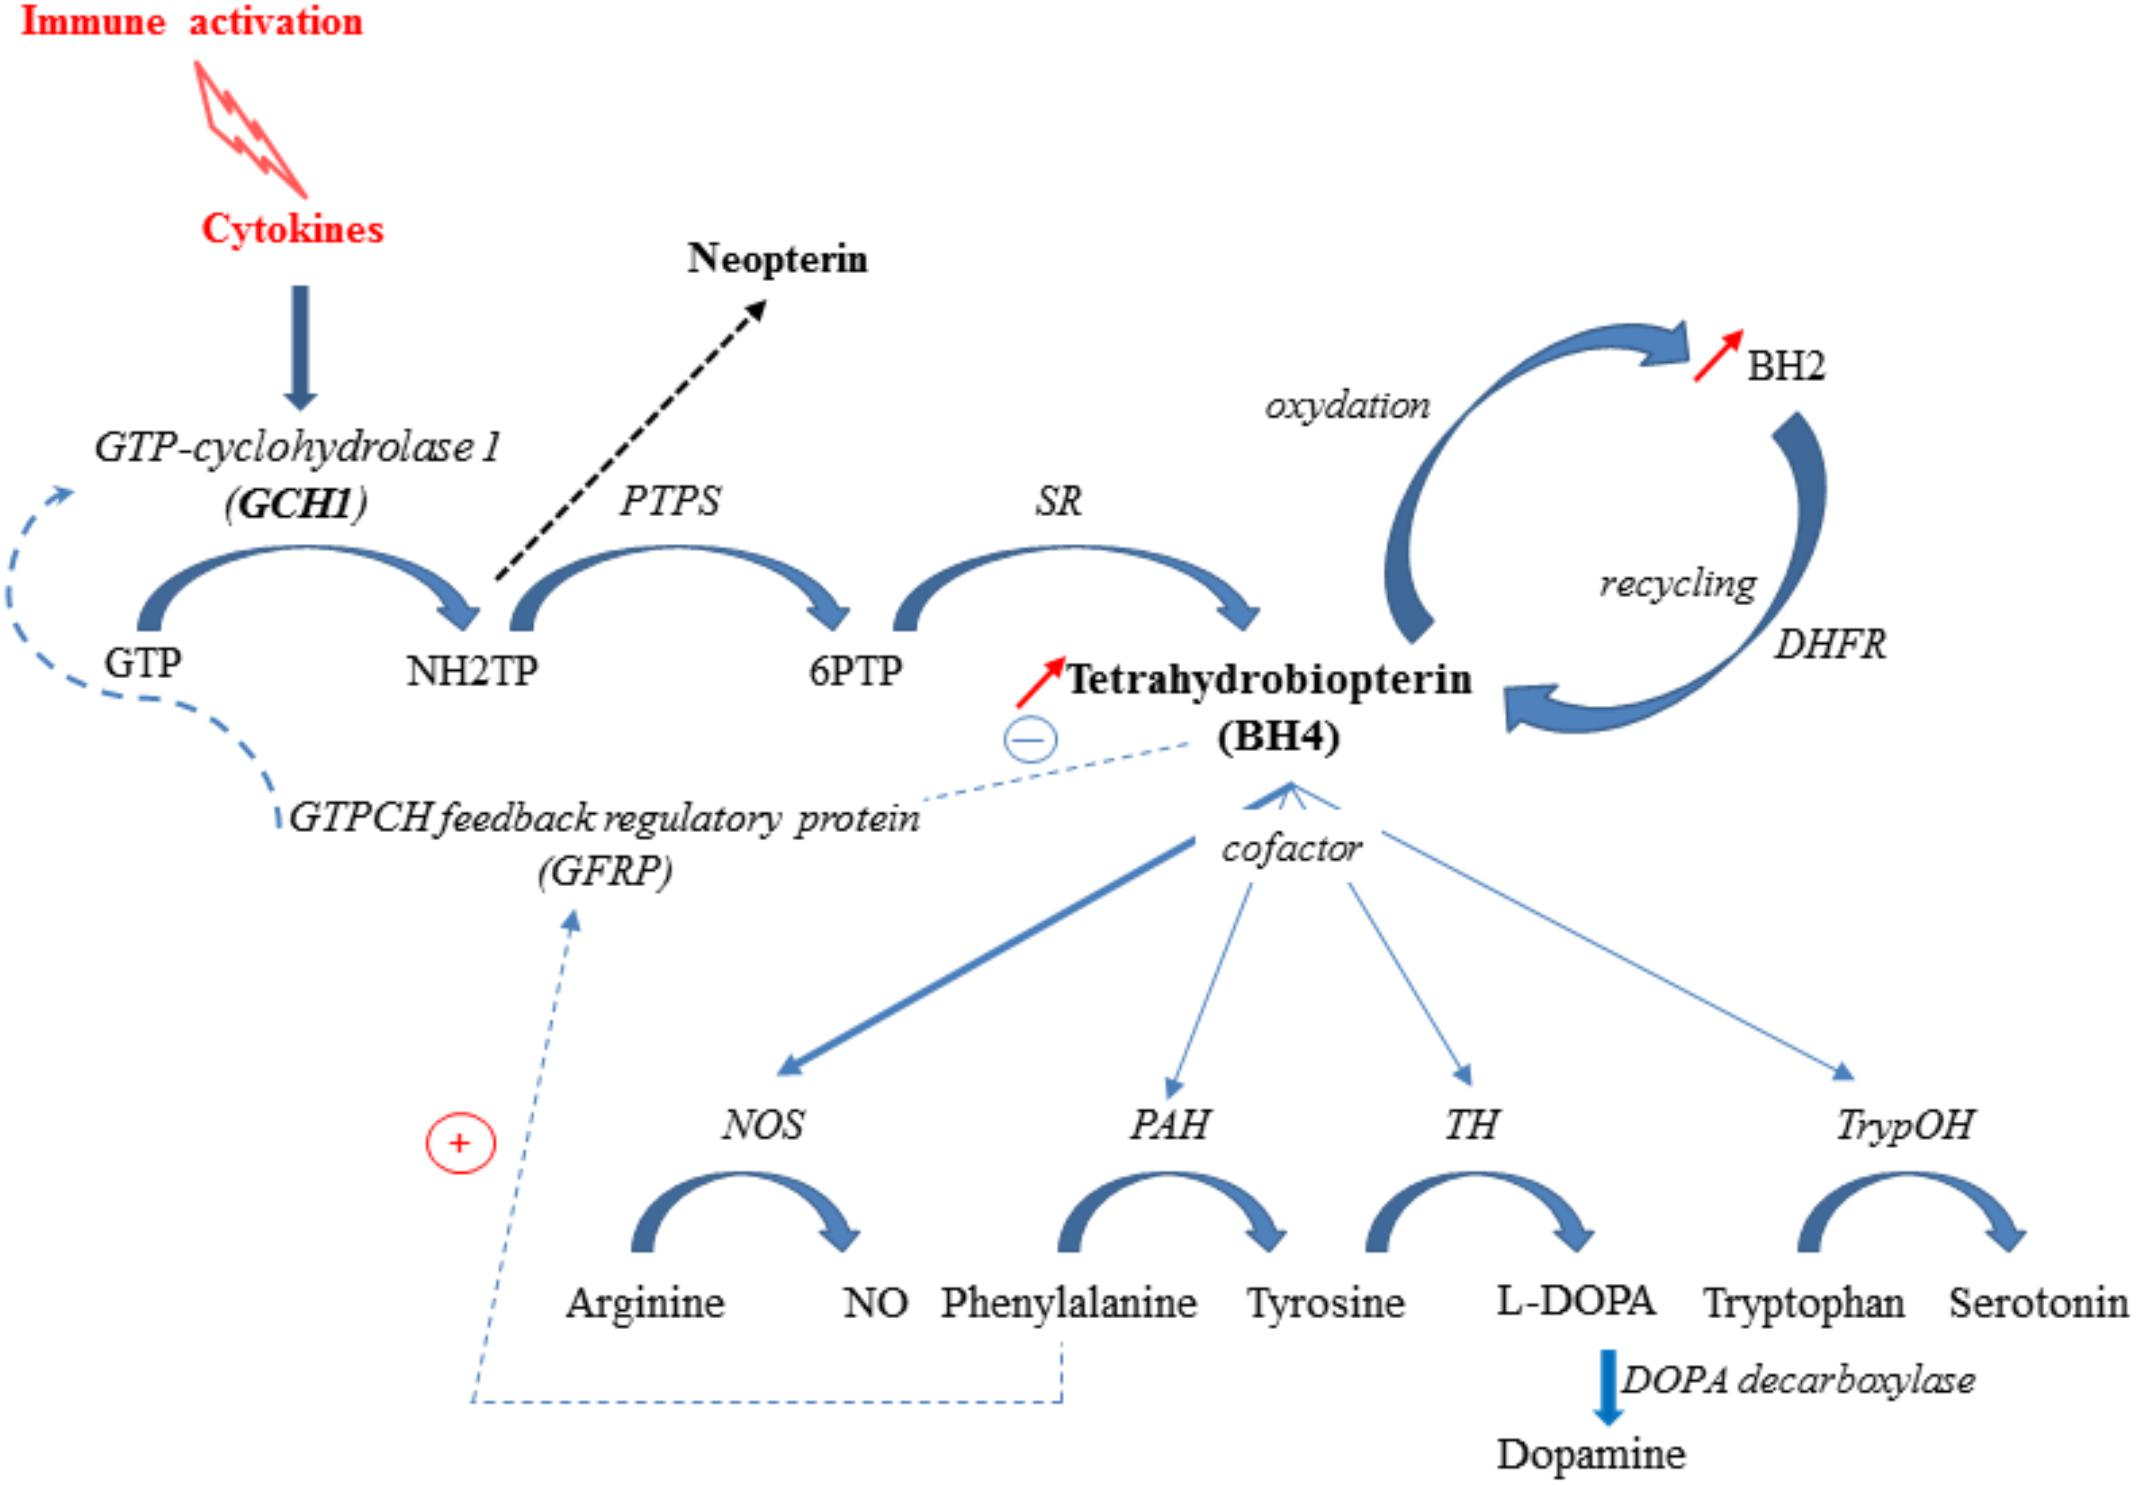 Frontiers | Brain Kynurenine and BH4 Pathways: Relevance to the